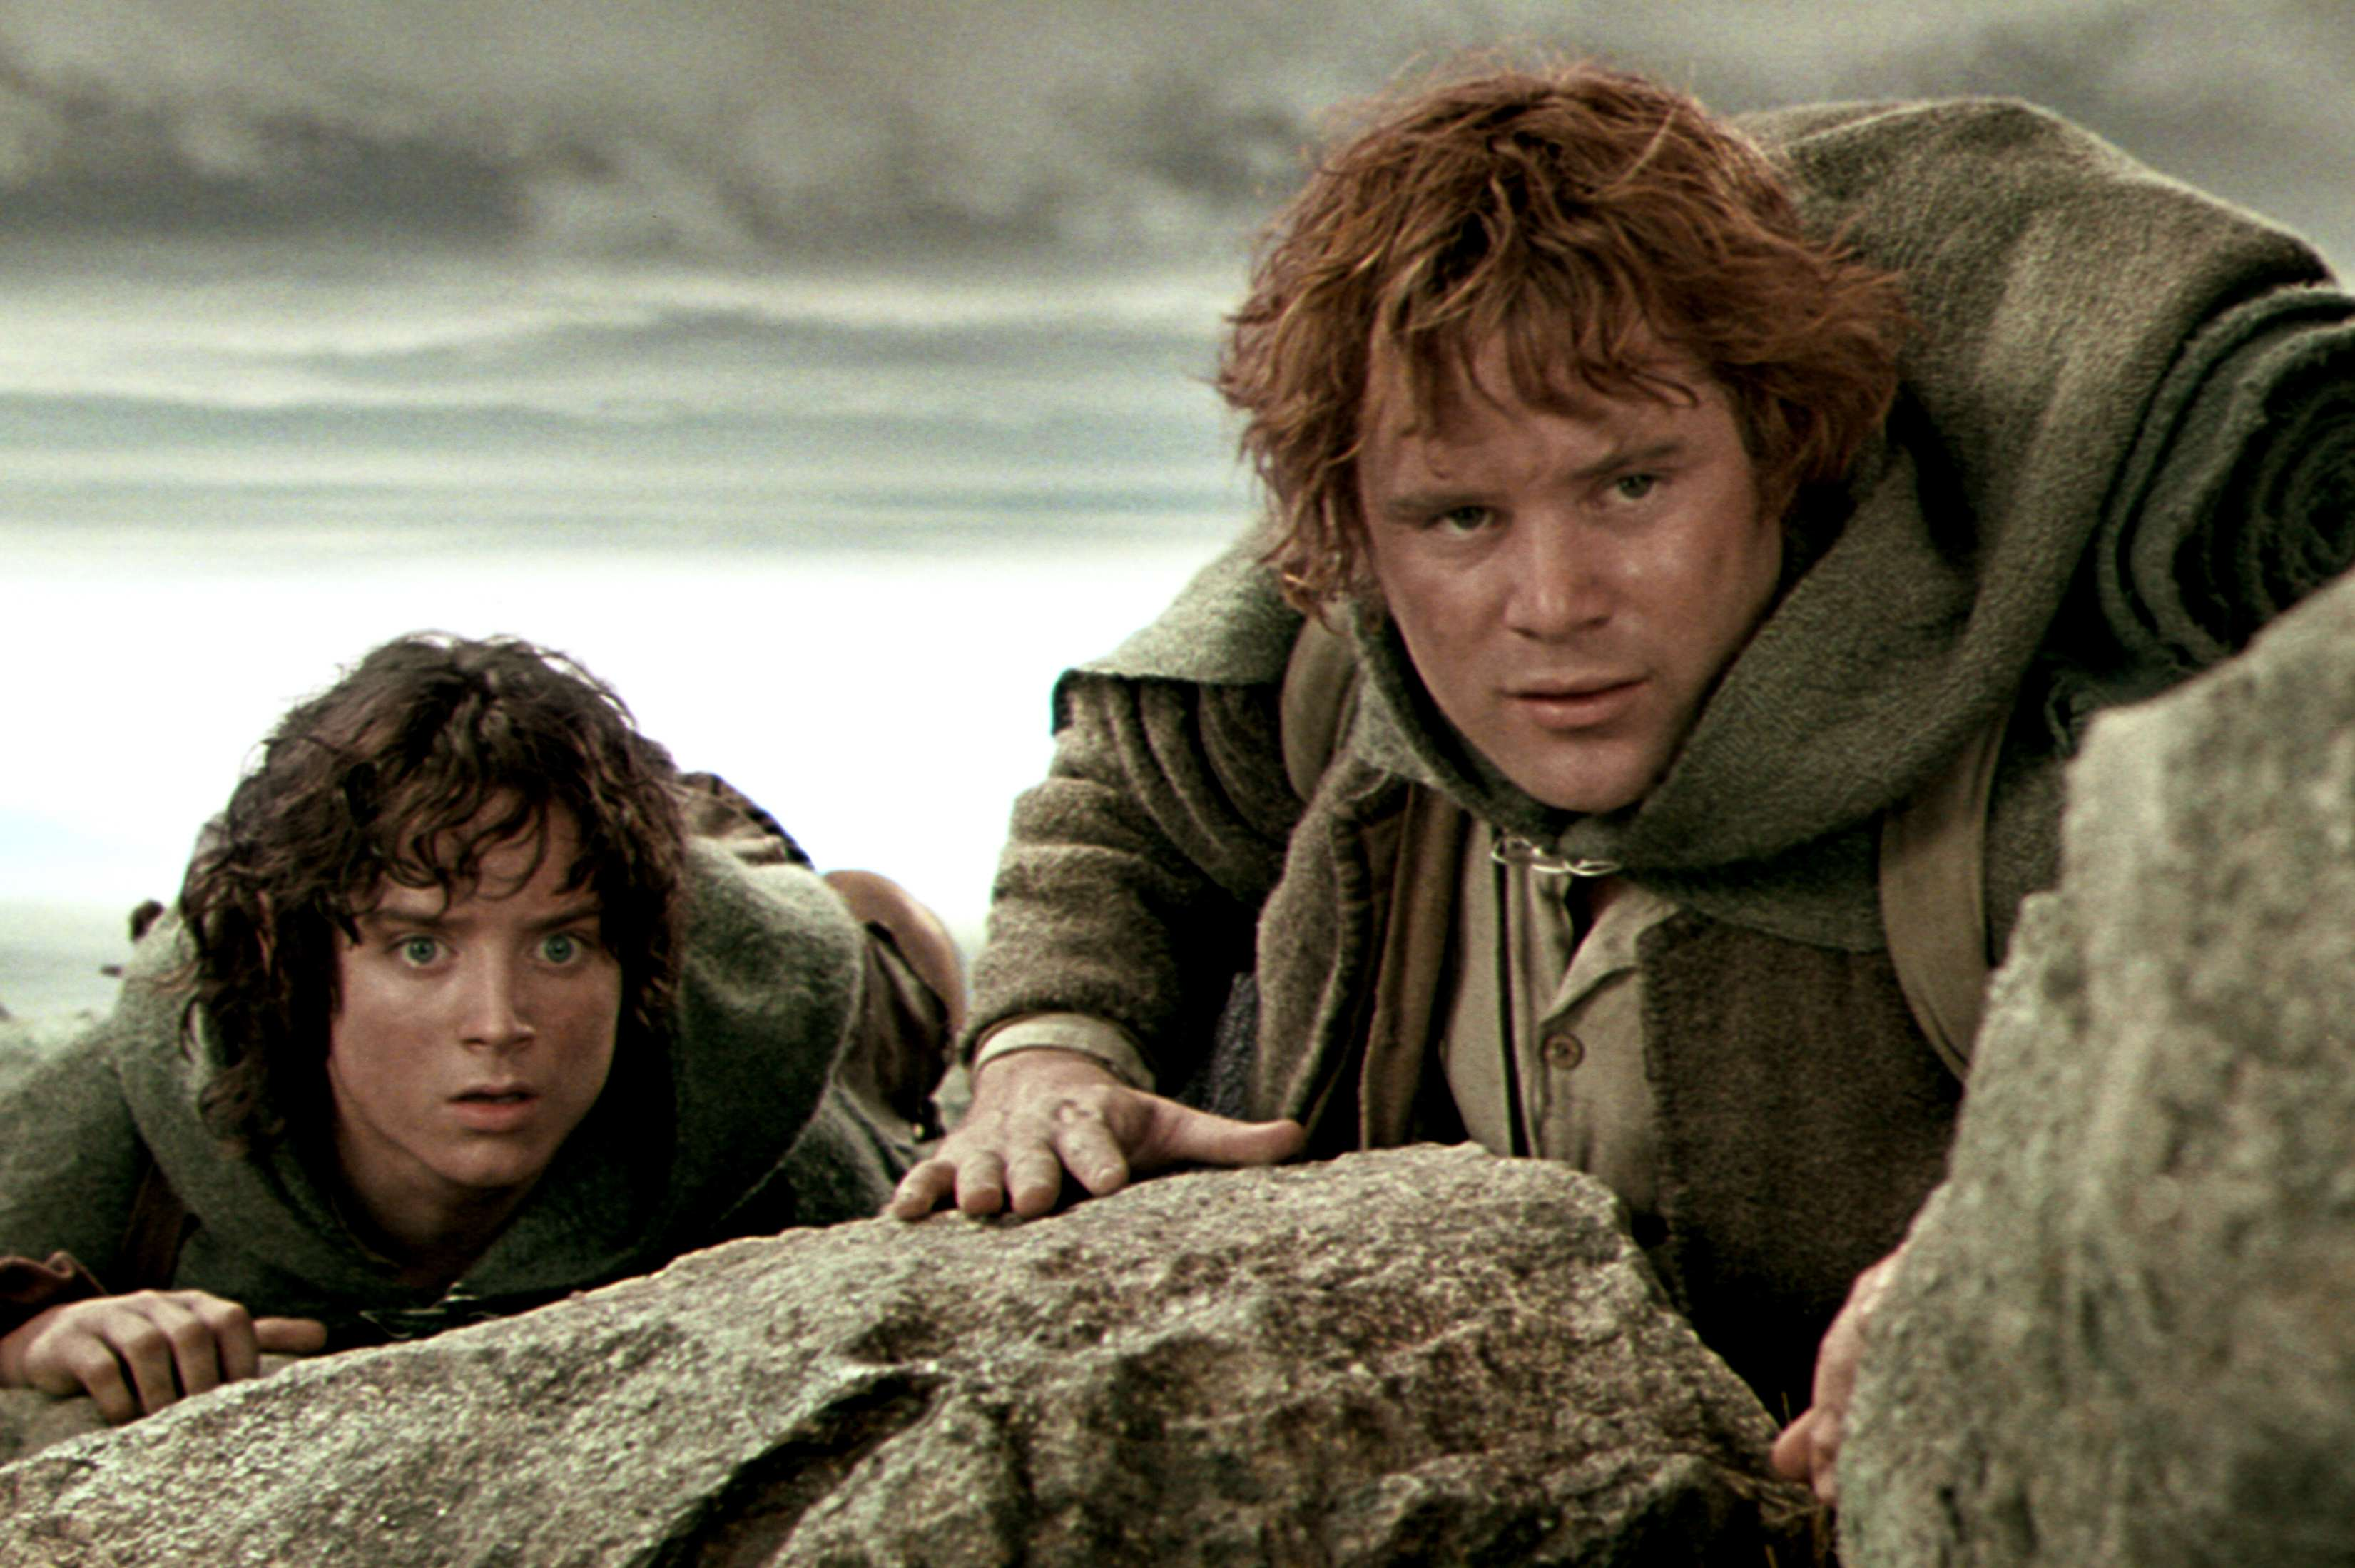 SamFrodo Scientists Have Discovered Hobbits Existed   But We Killed Them All